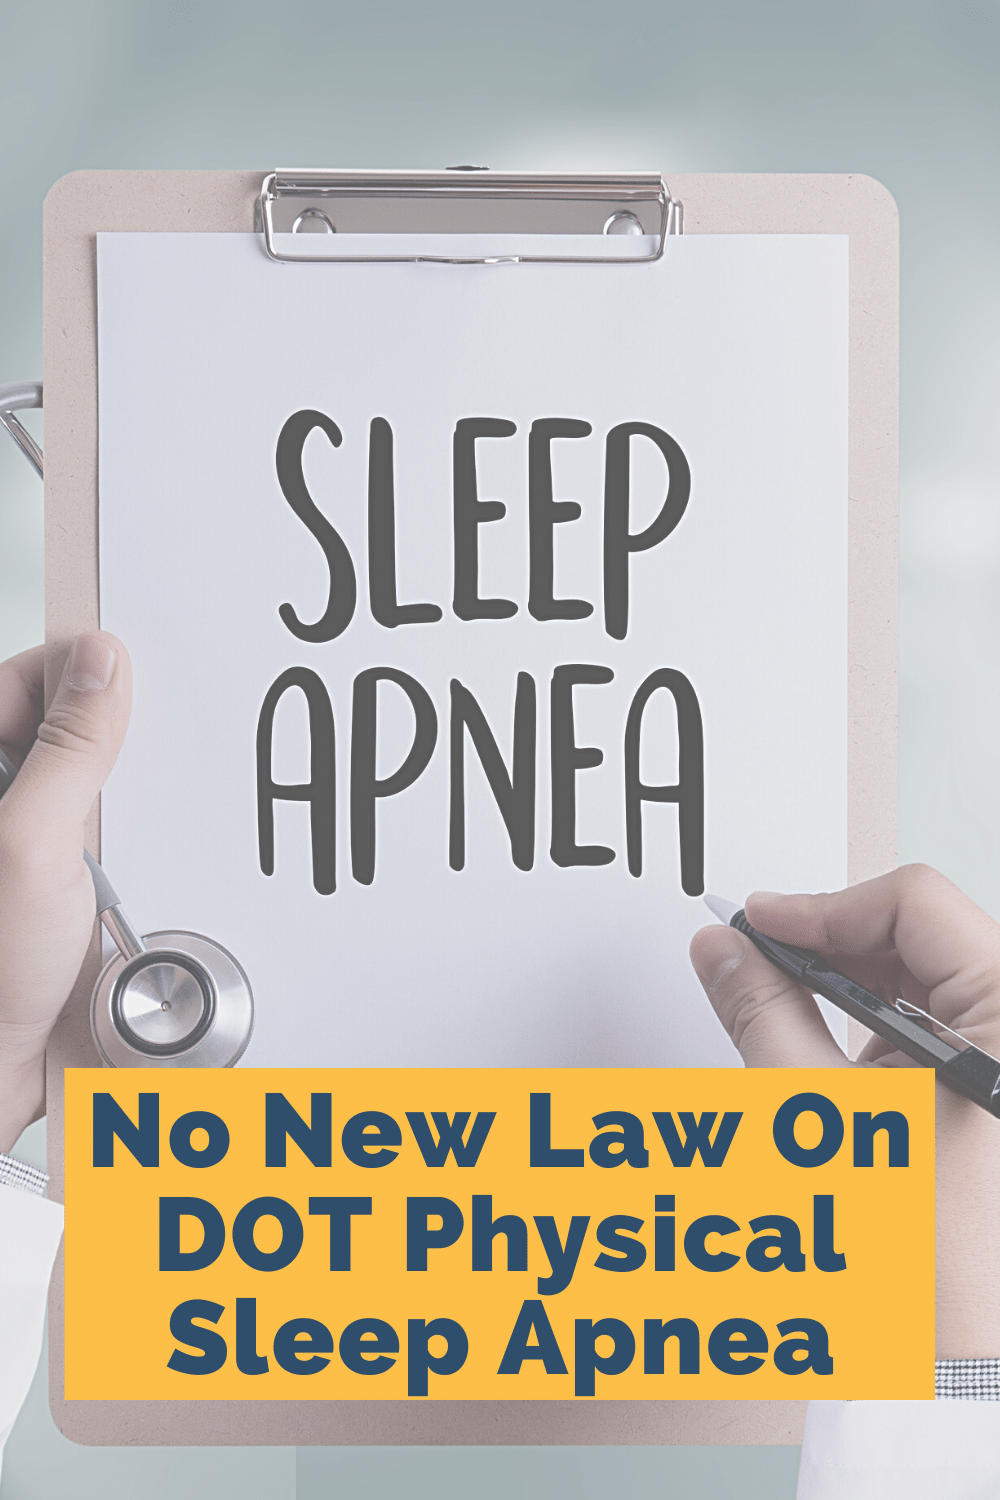 No New Law On DOT Physical Sleep Apnea